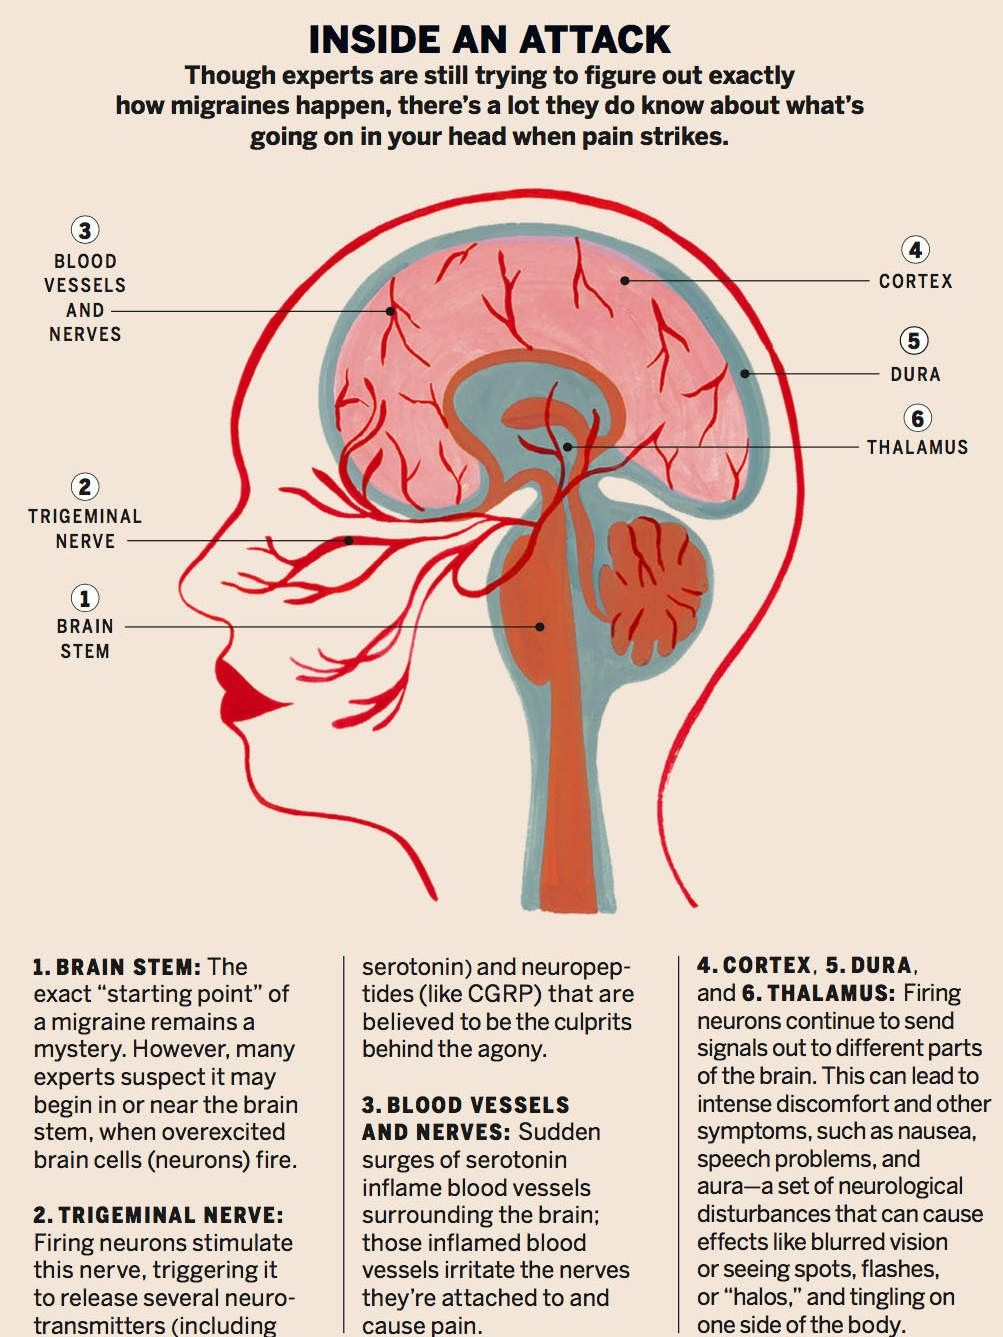 Image of an illustrated head diagram including Brain stem, Trigeminal nerve, blood vessels, cortex, Dura and Thalamus